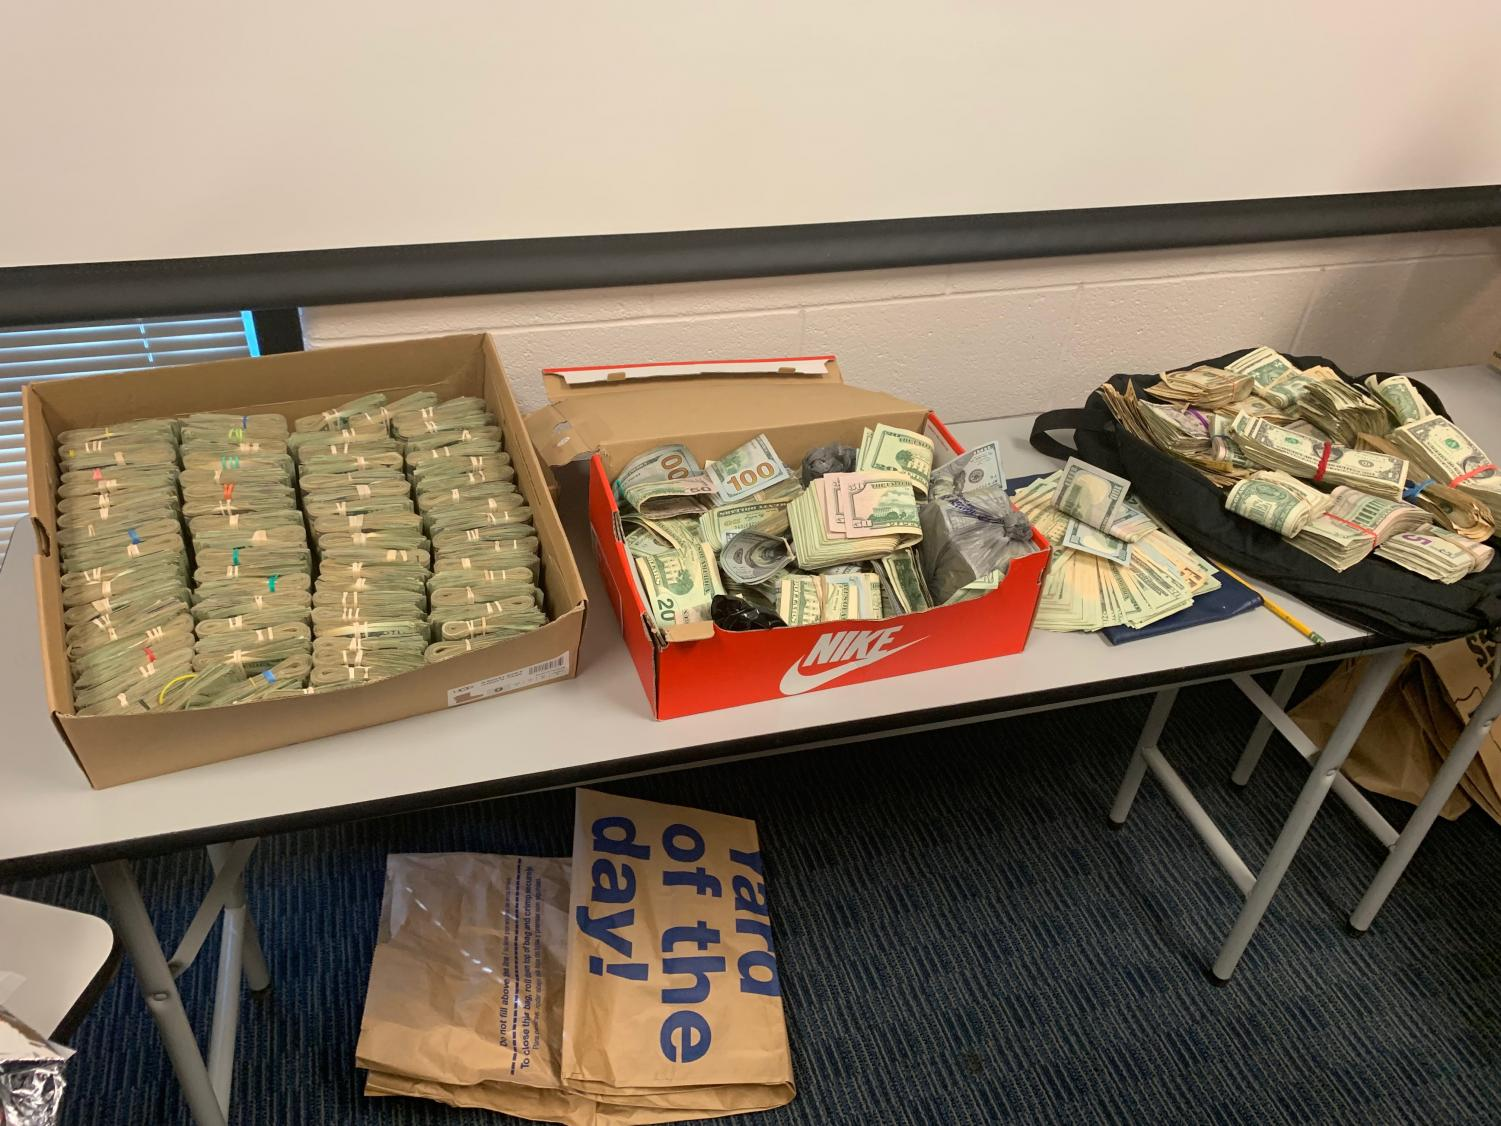 As part of the investigation led by area law enforcement agencies, more than $160,000 was recovered.